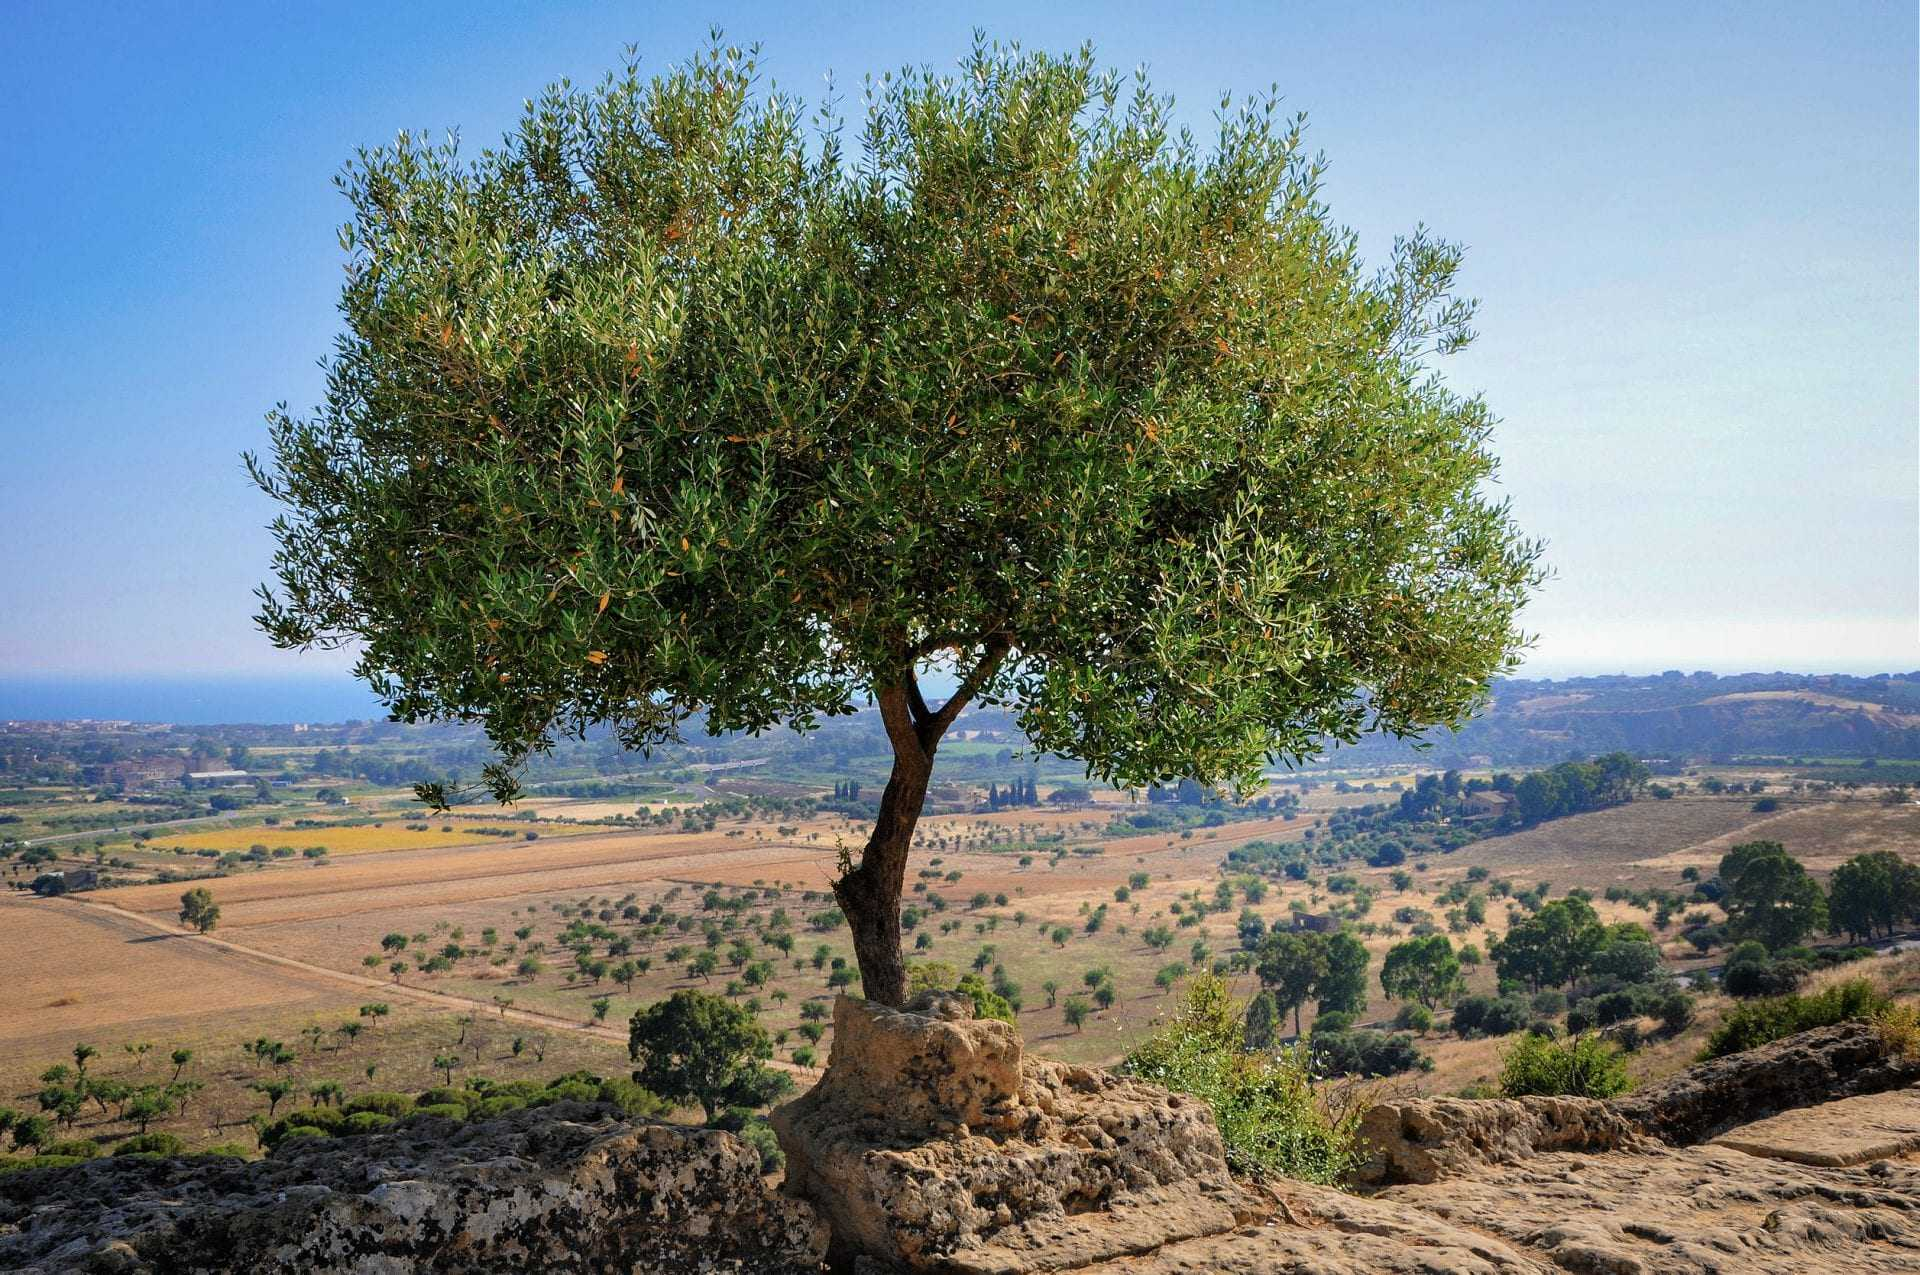 challenges-await-growers-as-mediterranean-basin-becomes-hotter-and-drier-olive-oil-times